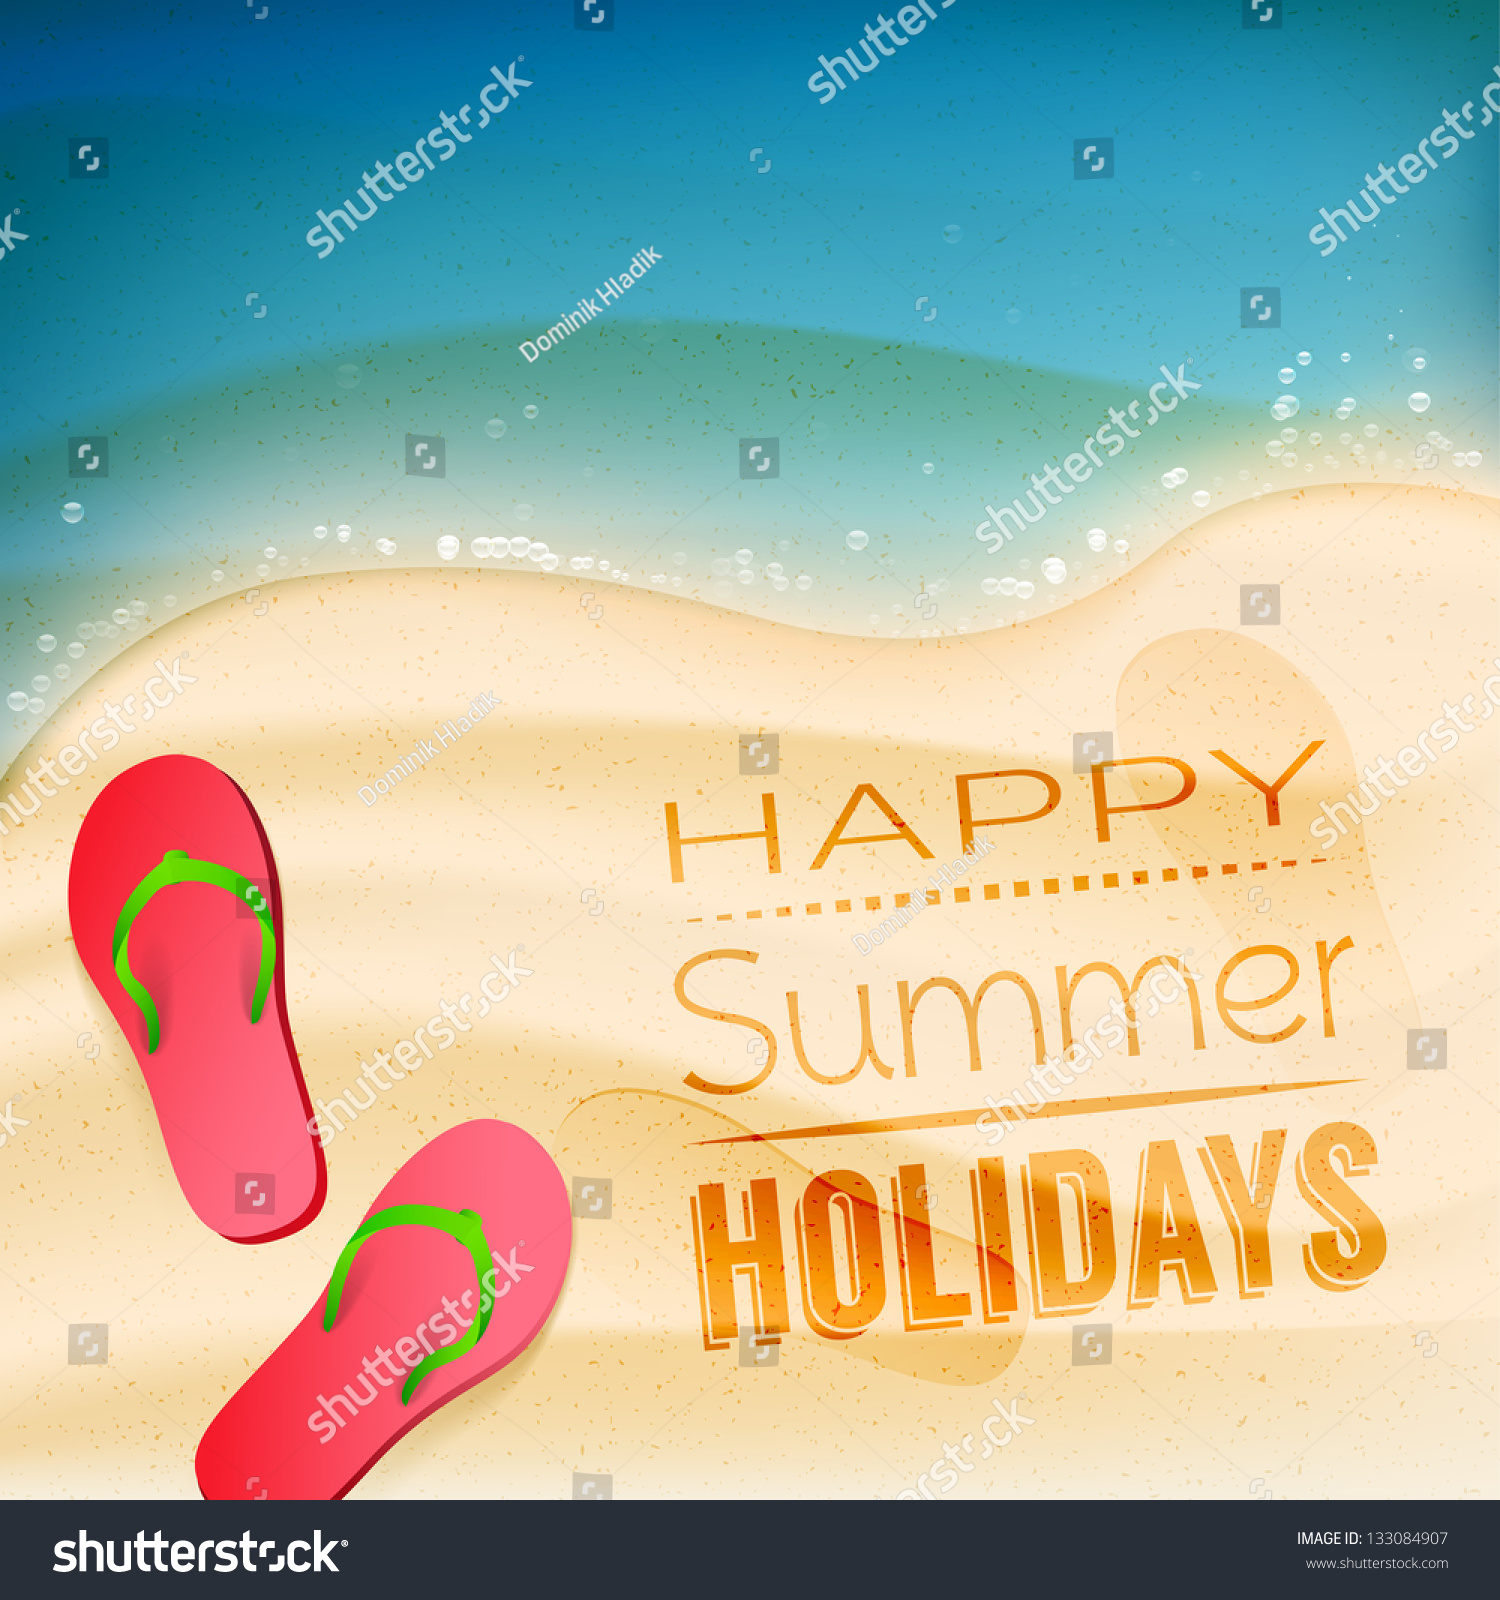 Happy Summer Holidays Creative Background Stock Vector 133084907